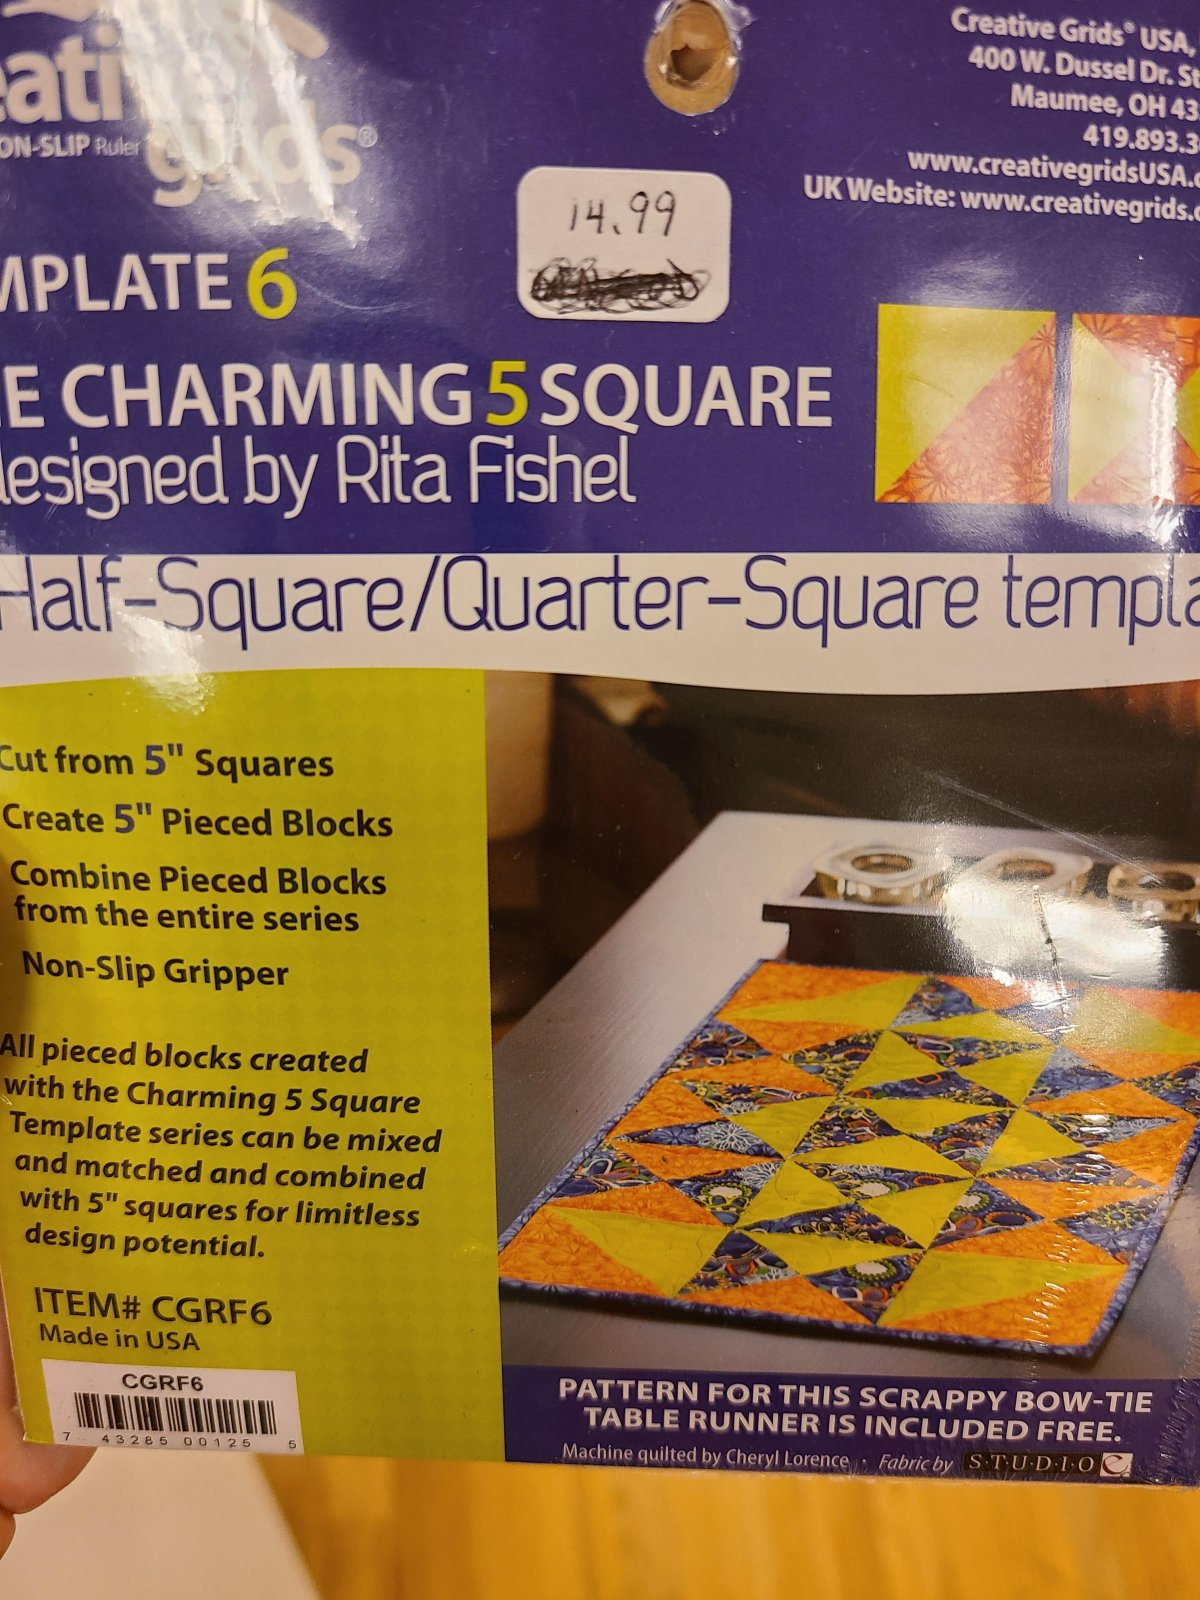 CHARMING 5 SQUARE RULER AND PATTERN